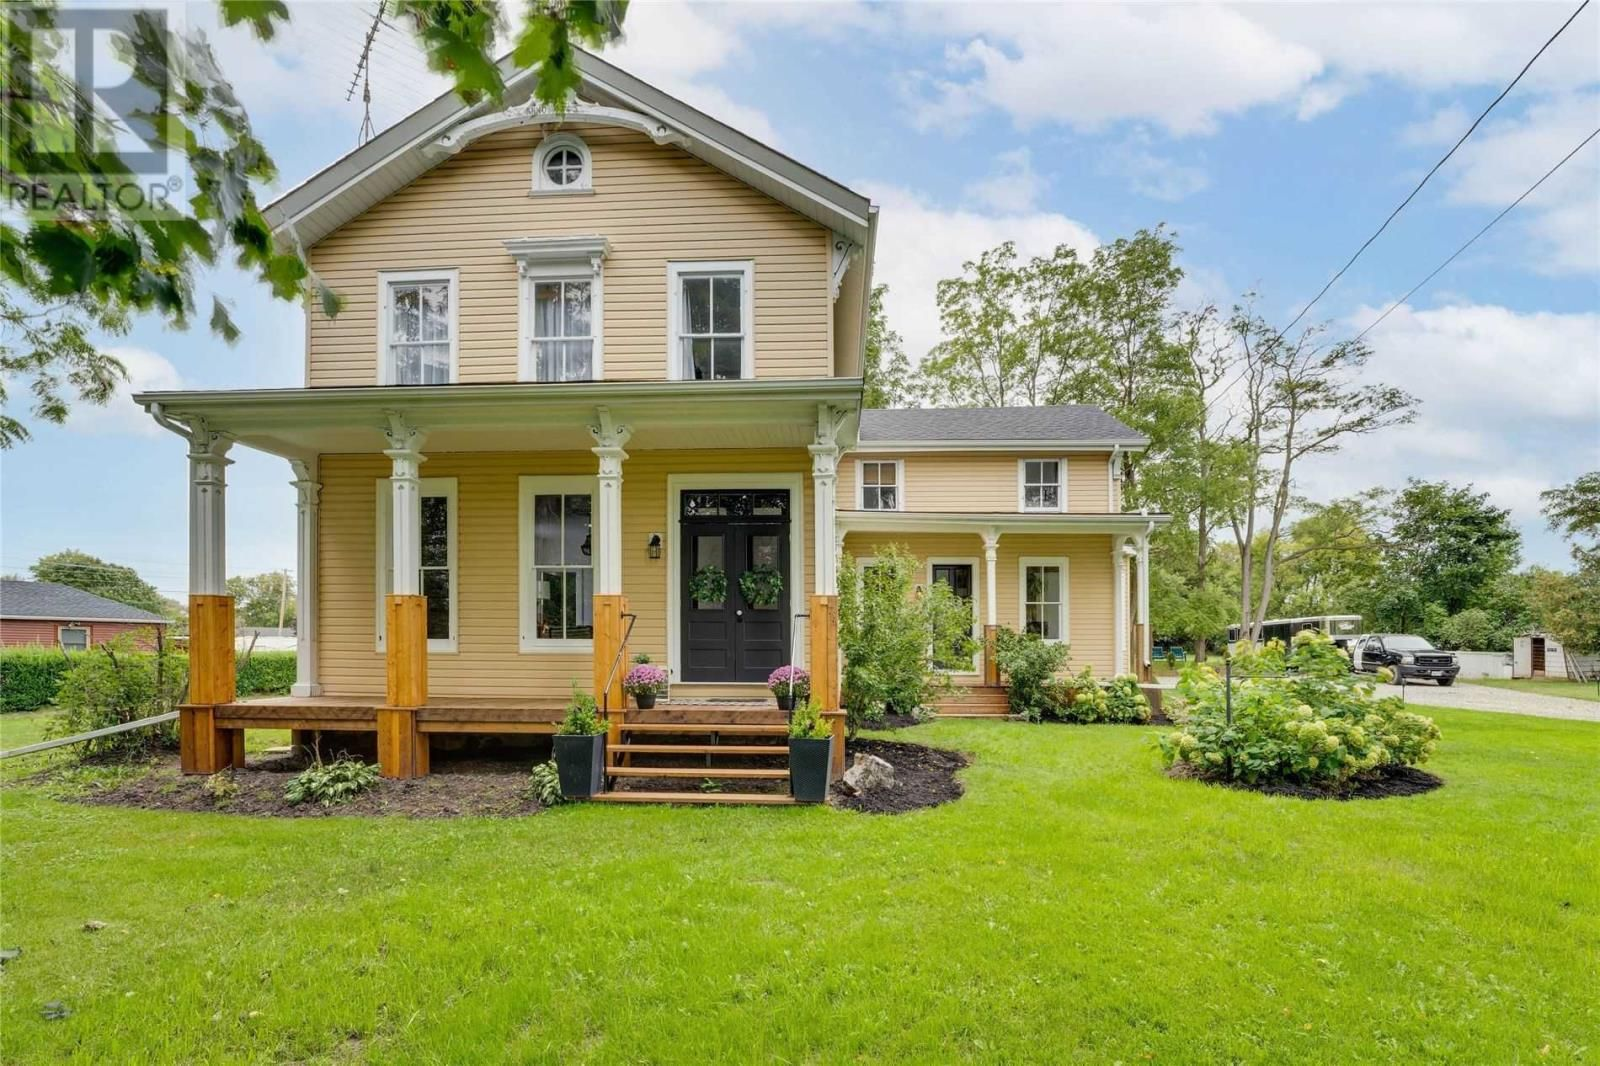 Main Photo: 4646 COUNTY 2 RD in Port Hope: House for sale : MLS®# X5386551